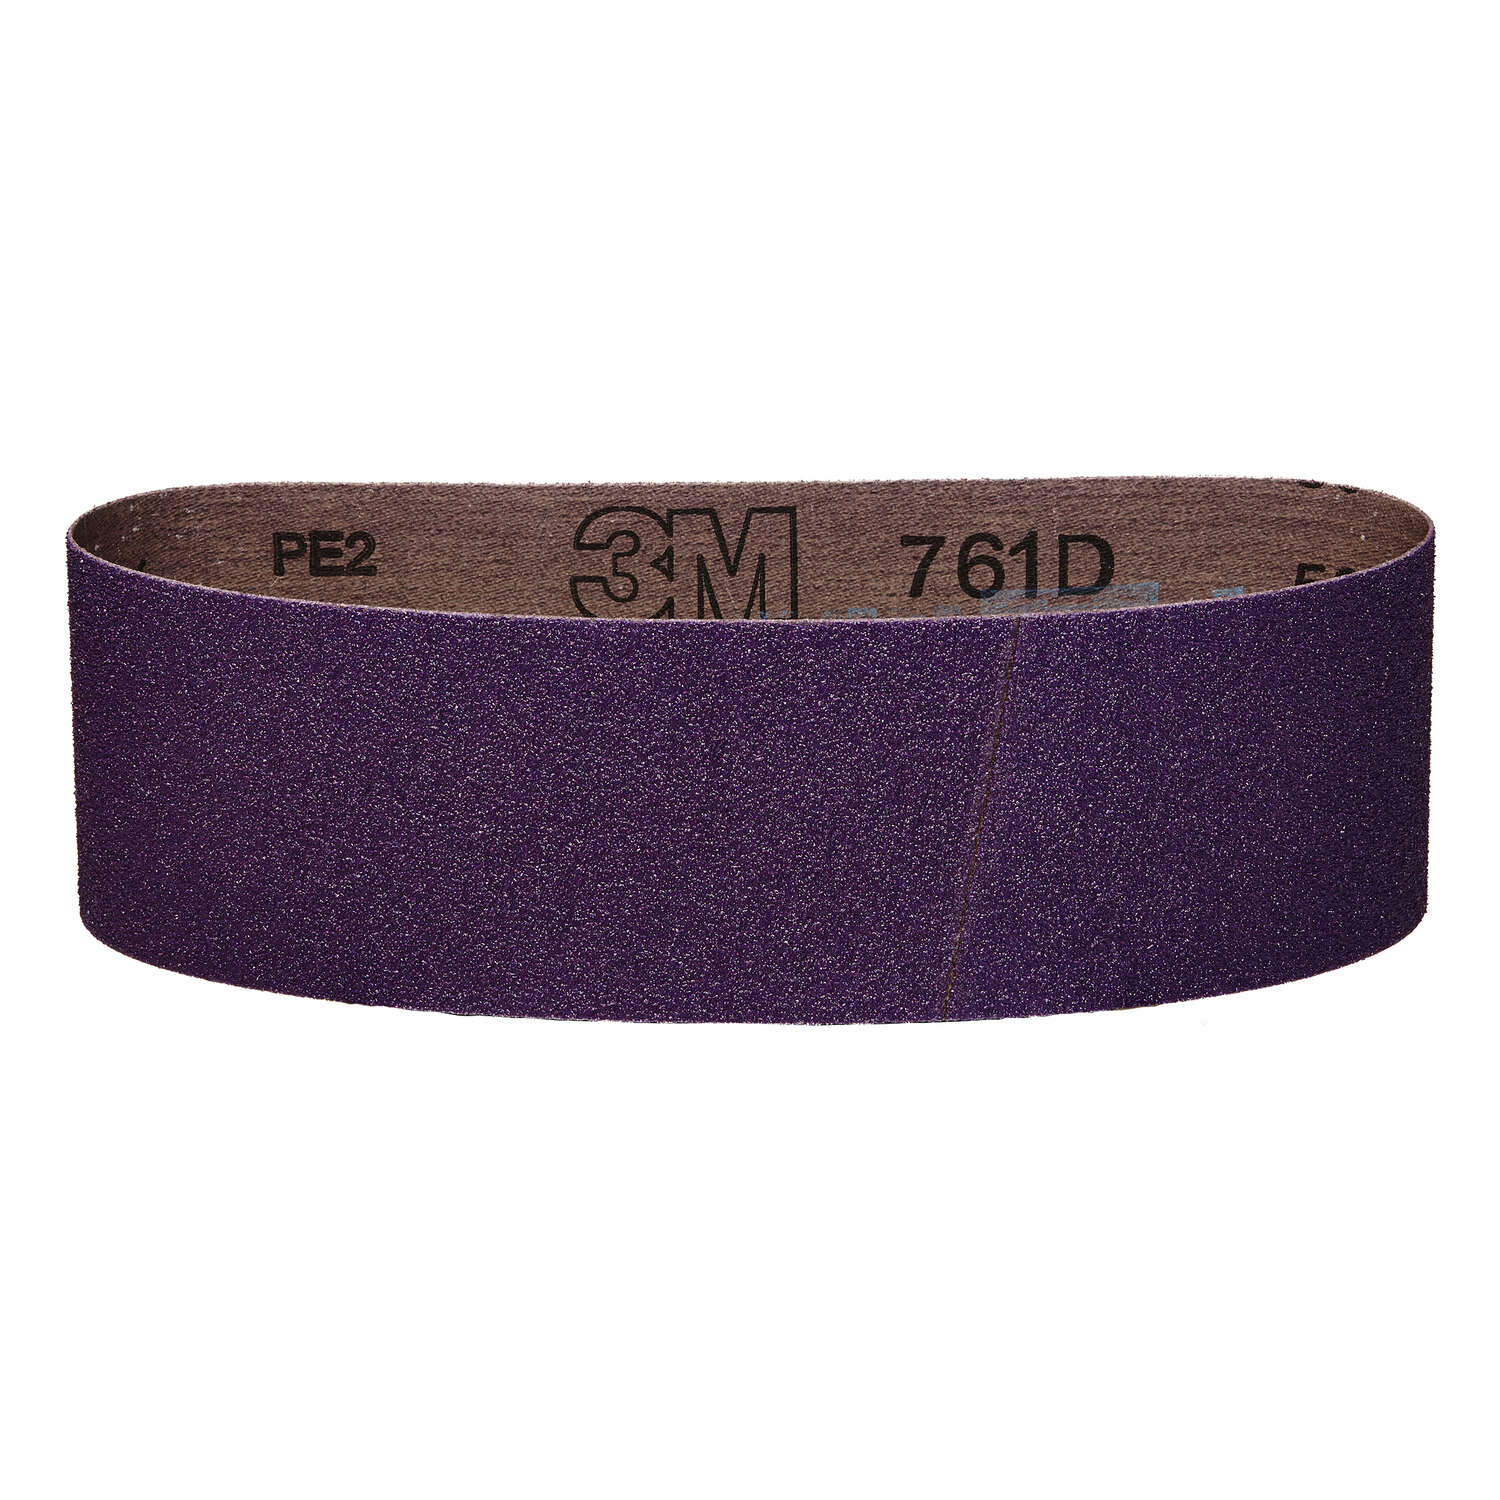 3M  18 inch  L x 3 in. W Ceramic  Sanding Belt  50 Grit 1 pk Coarse